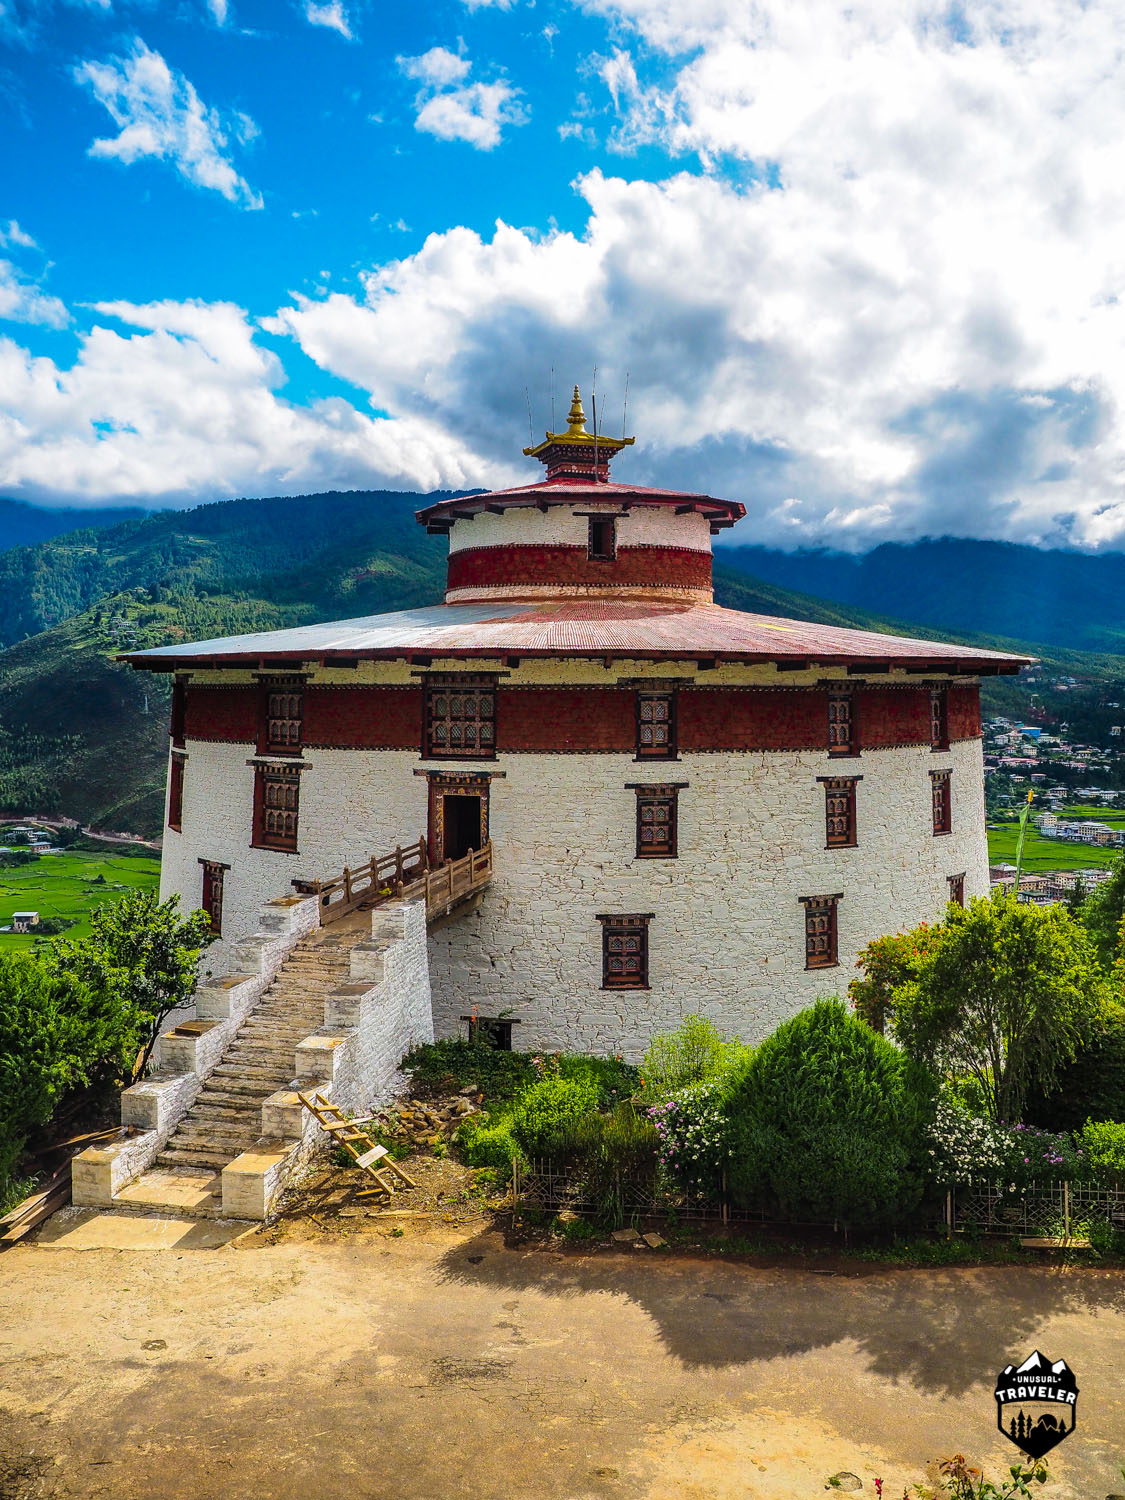 the National Museum has in its possession over 3,000 works of Bhutanese art, covering more than 1,500 years of Bhutan's cultural heritage. Its rich holdings of various creative traditions and disciplines, represent a remarkable blend of the past with the present and is a major attraction for local and foreign visitors.